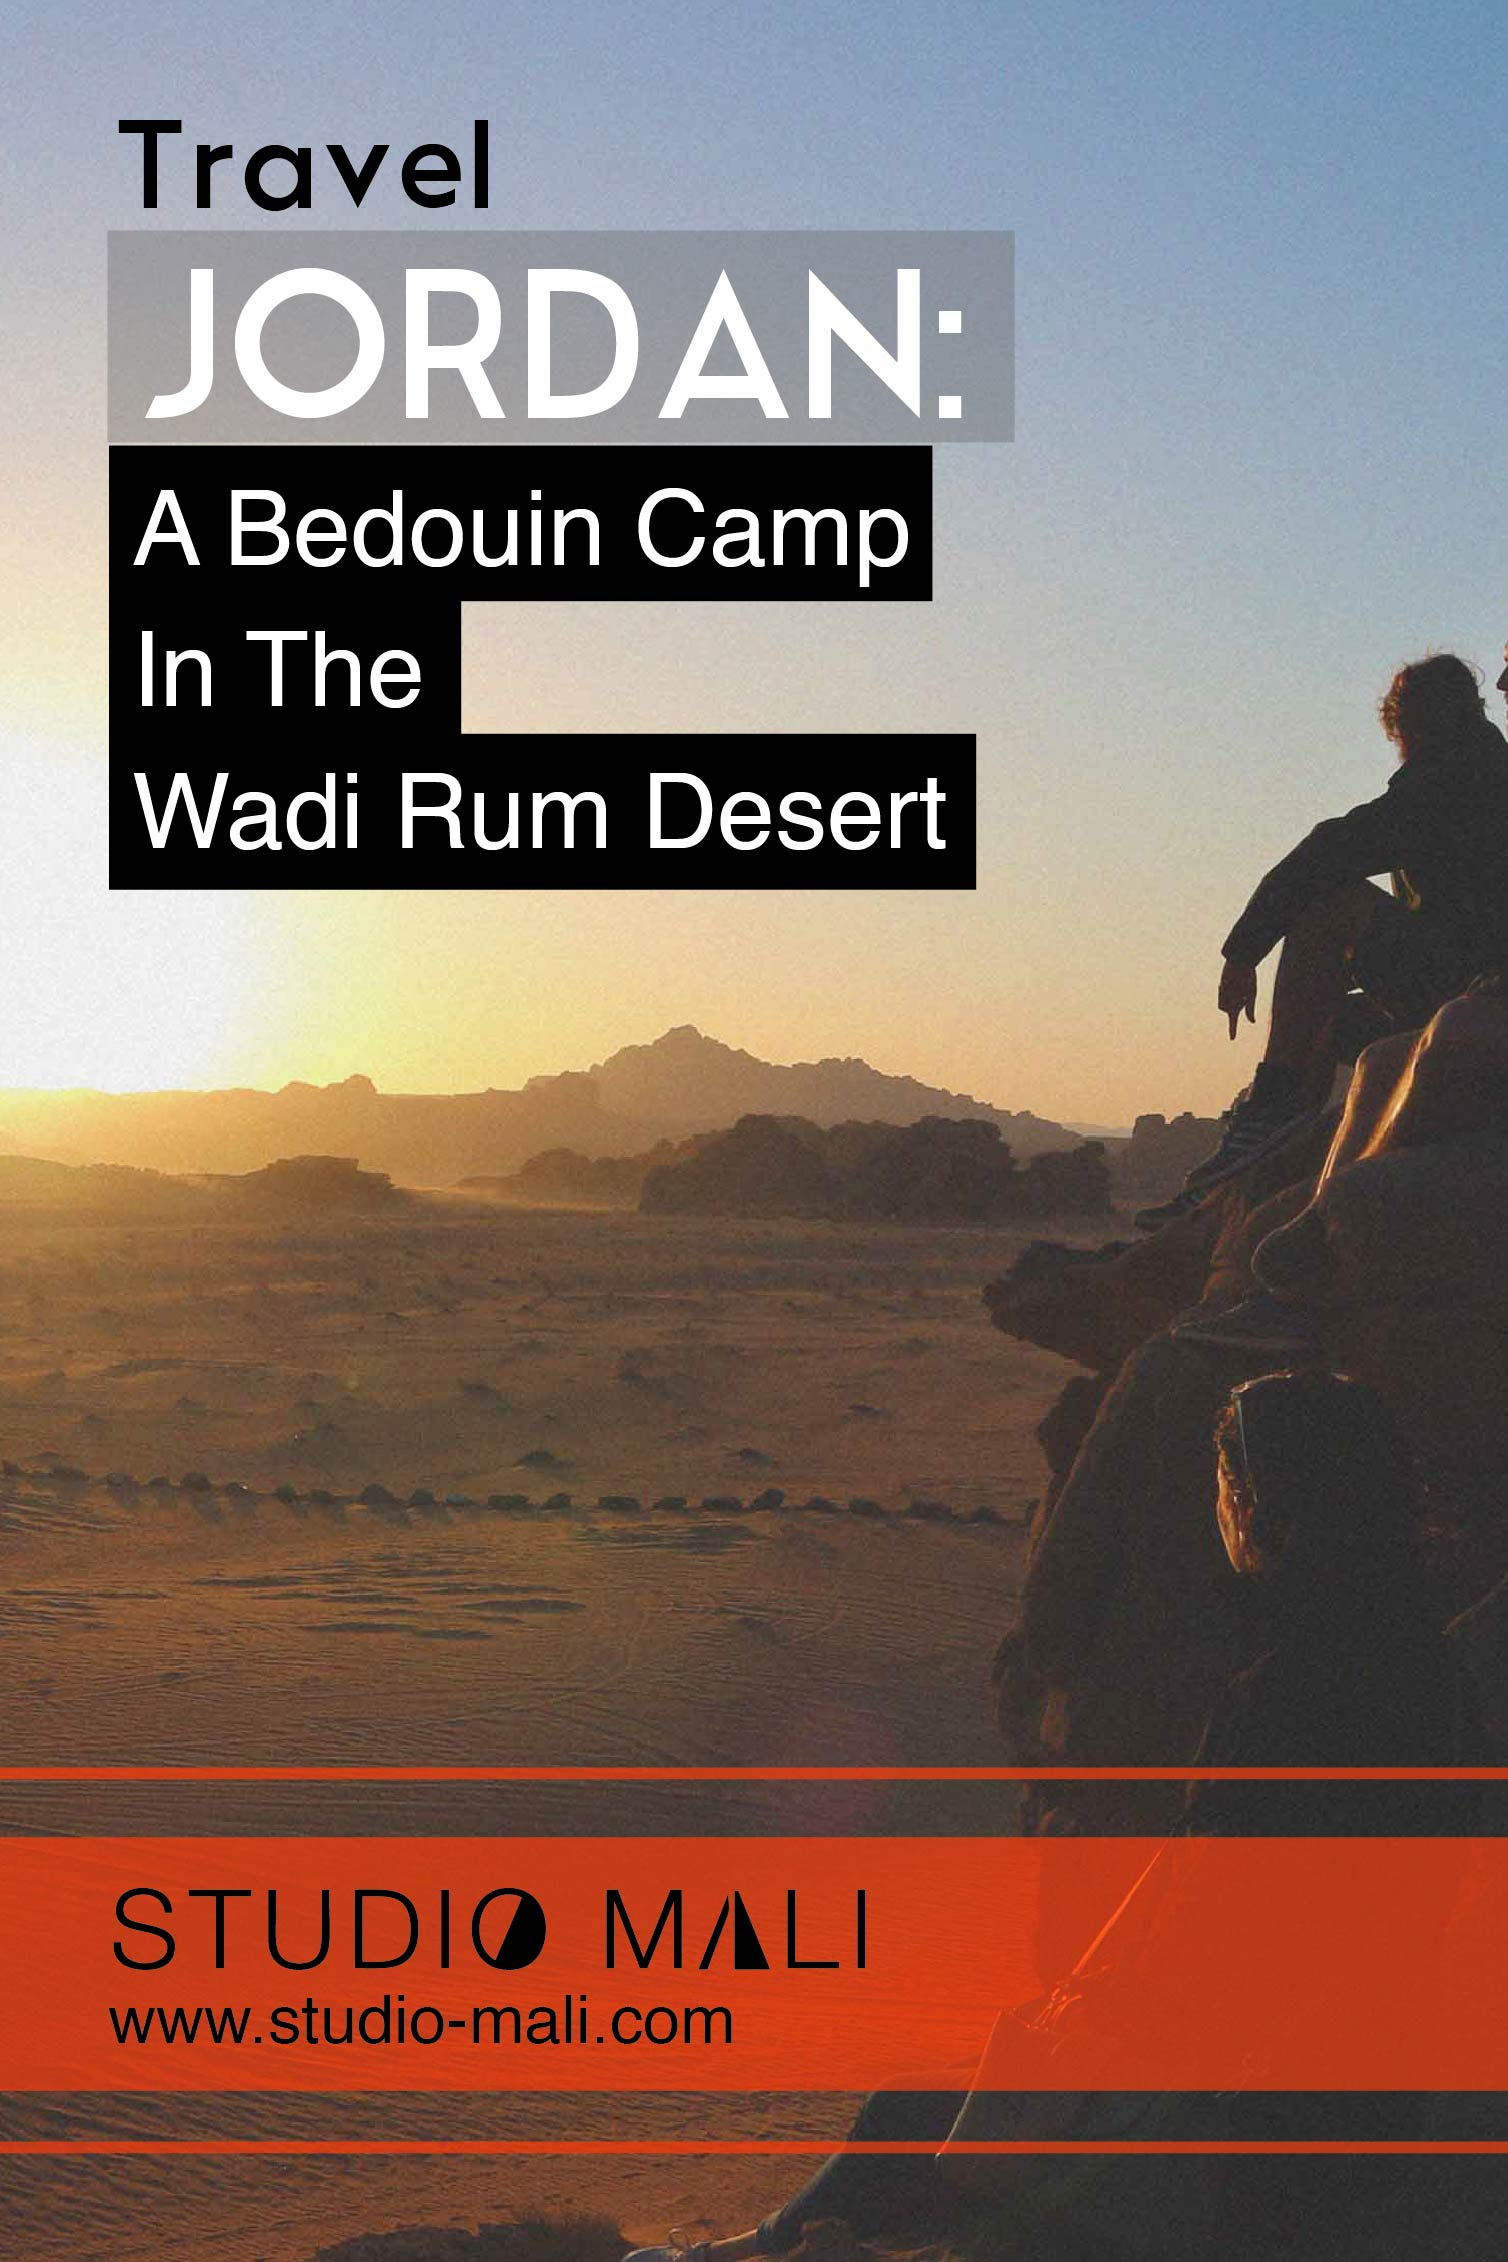 Jordan - A Bedouin Camp In The Wadi Rum Desert, by Studio Mali